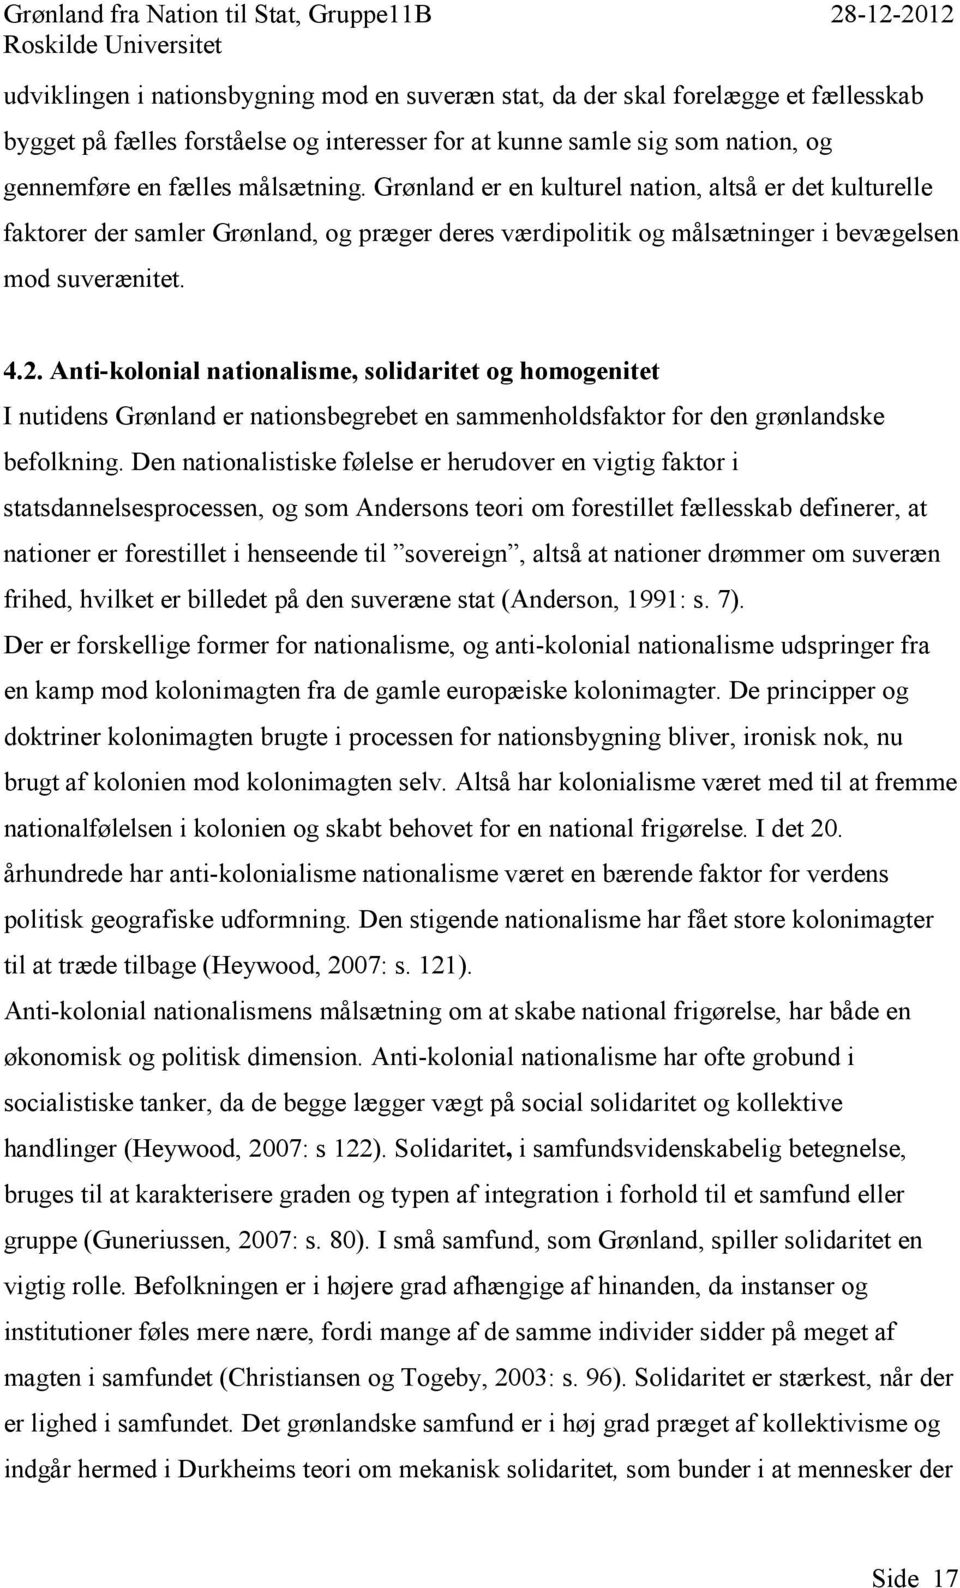 Anti-kolonial nationalisme, solidaritet og homogenitet I nutidens Grønland er nationsbegrebet en sammenholdsfaktor for den grønlandske befolkning.